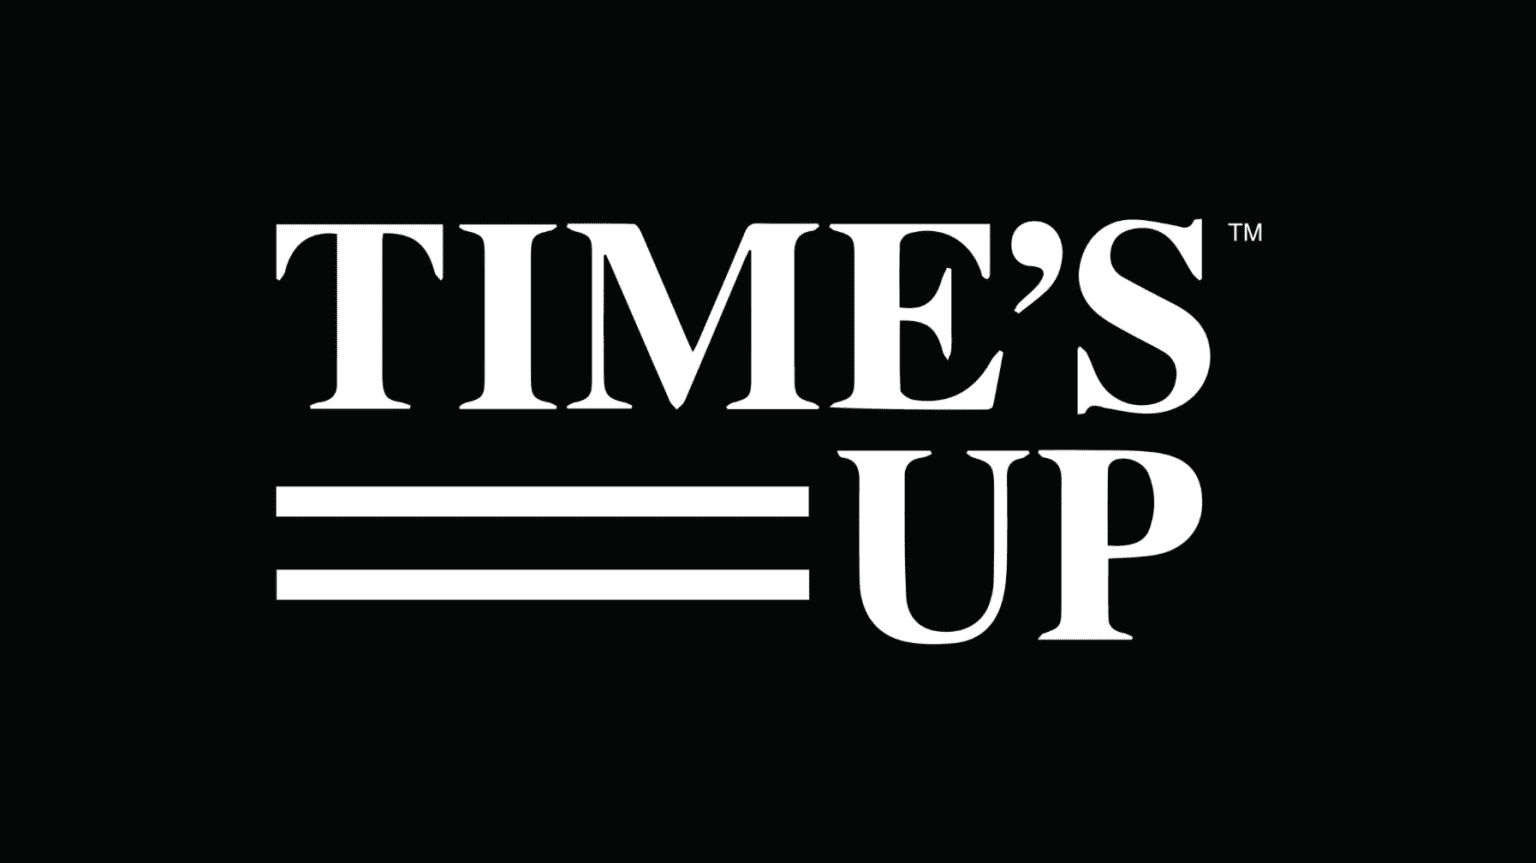 Time's Up Identity